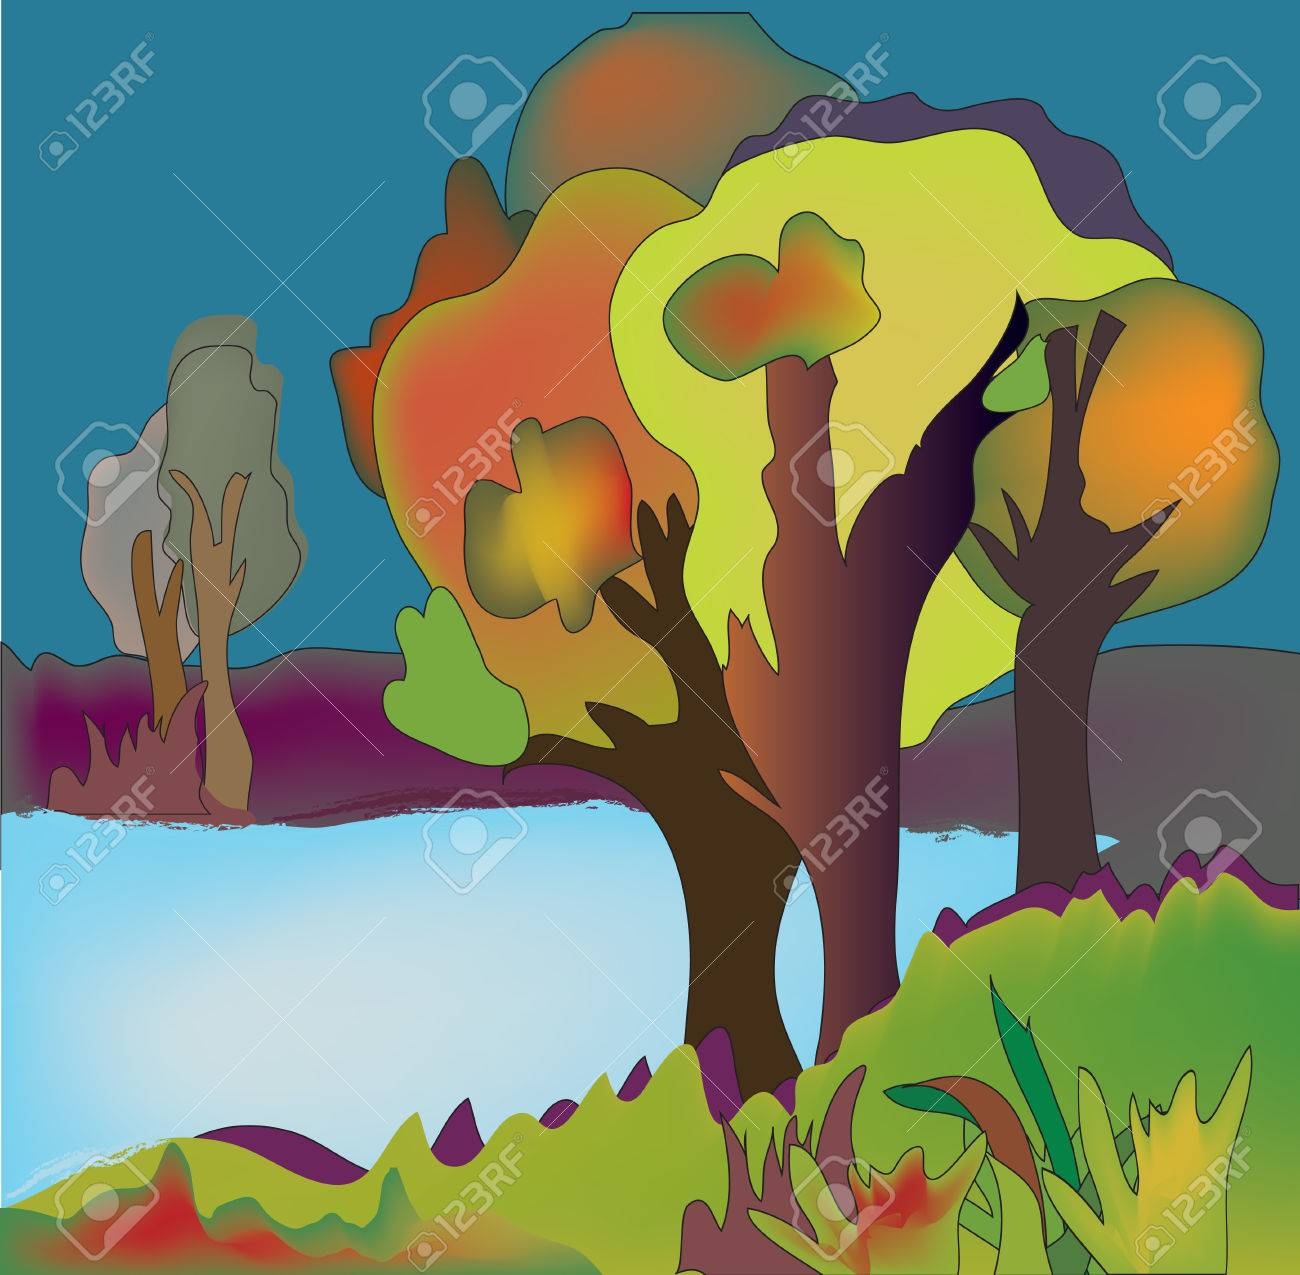 Autumn lake background with trees illustration Stock Vector - 22552825